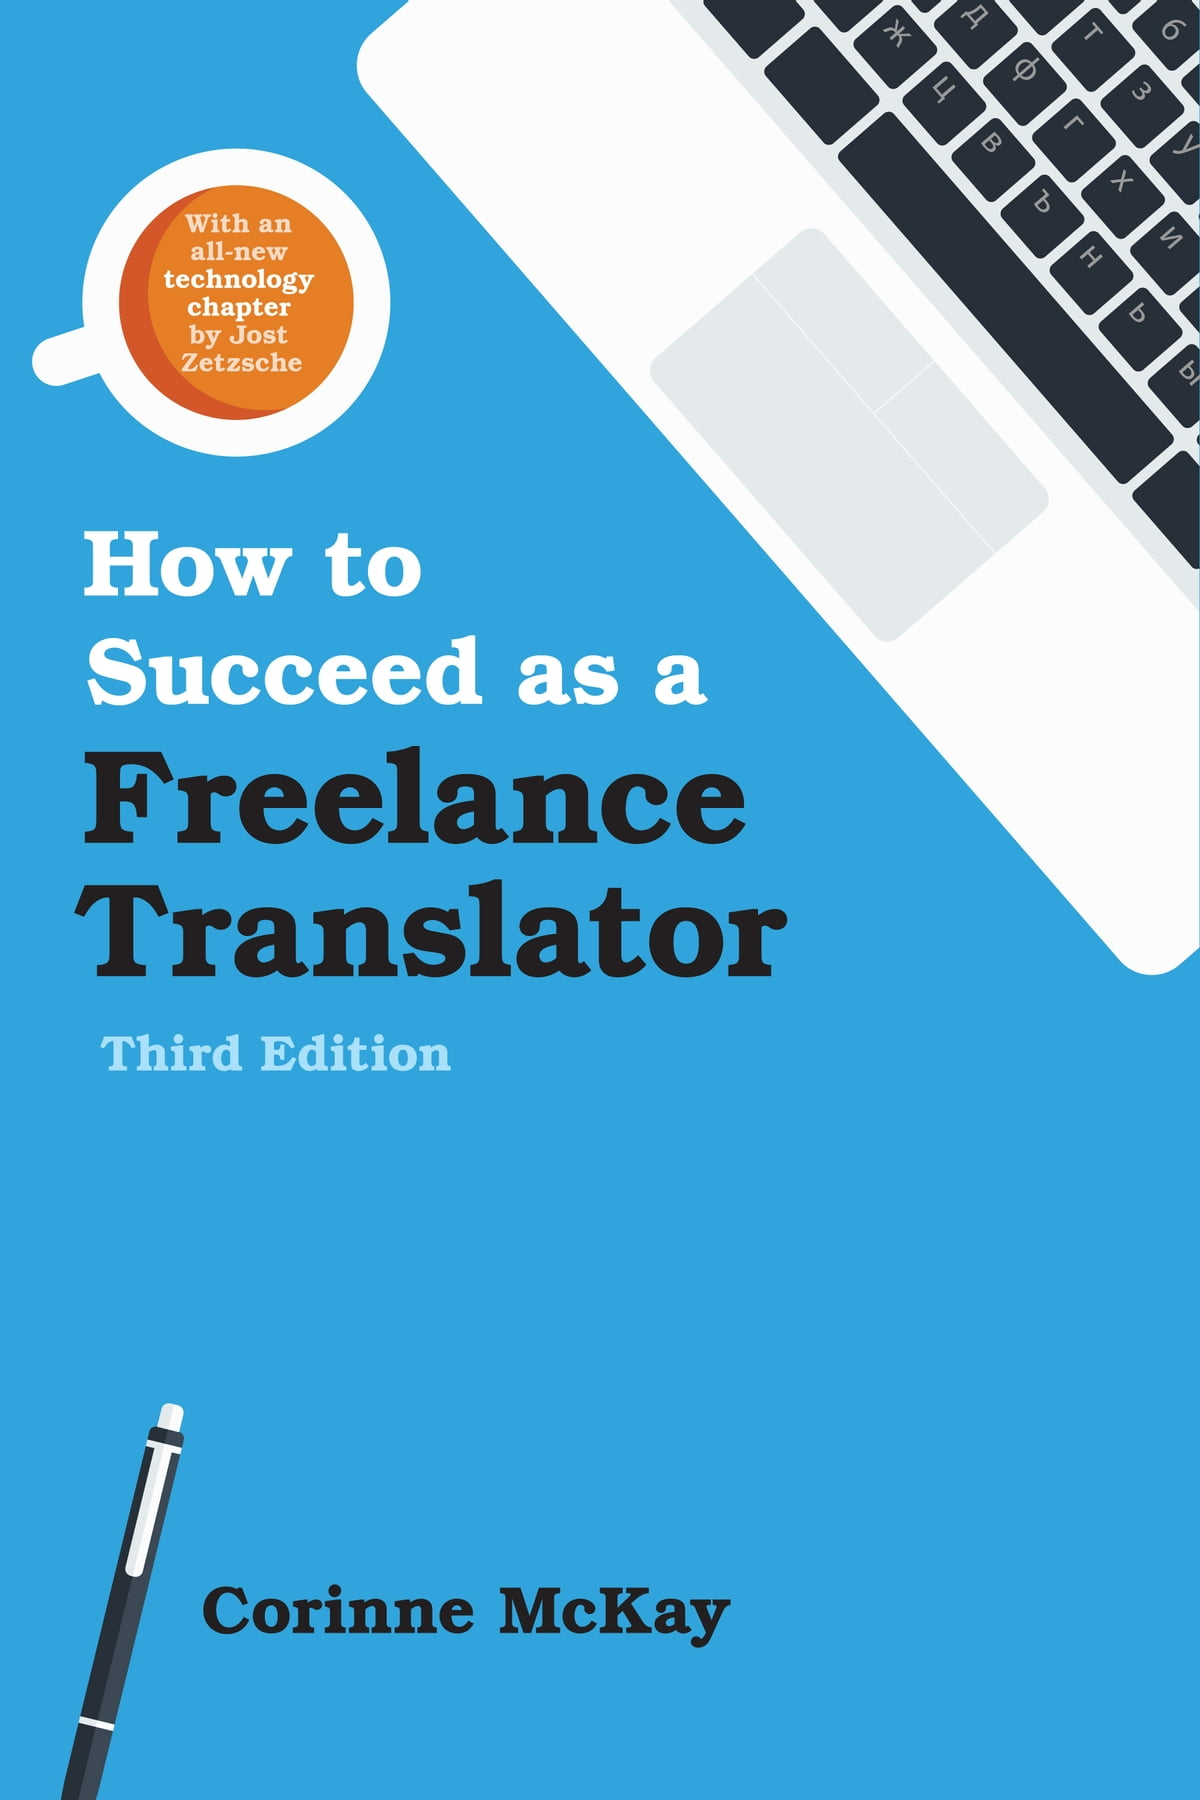 How to Succeed as a Freelance Translator, Third Edition eBook by Corinne  McKay - 9781483563398 | Rakuten Kobo